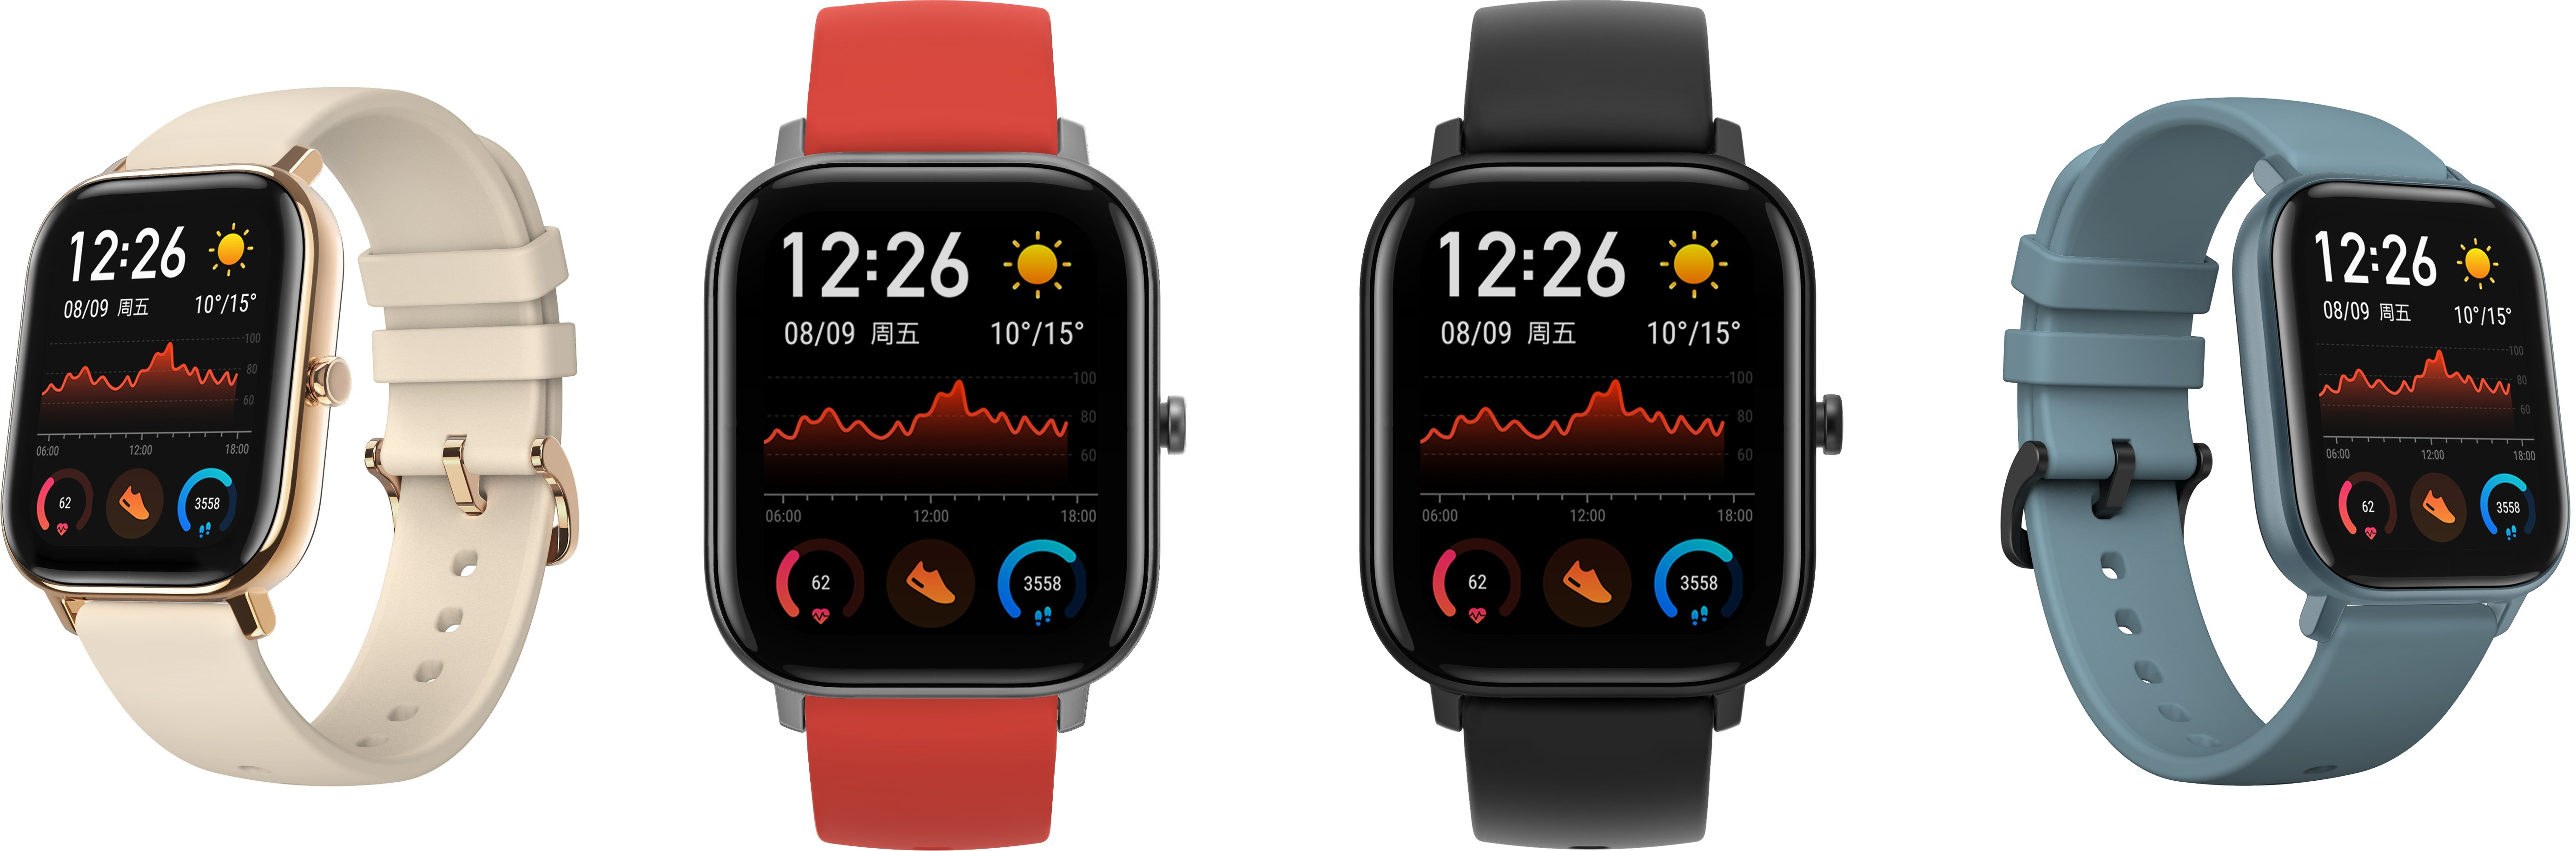 Huami Amazfit GTS review: you can clone design, but not ...